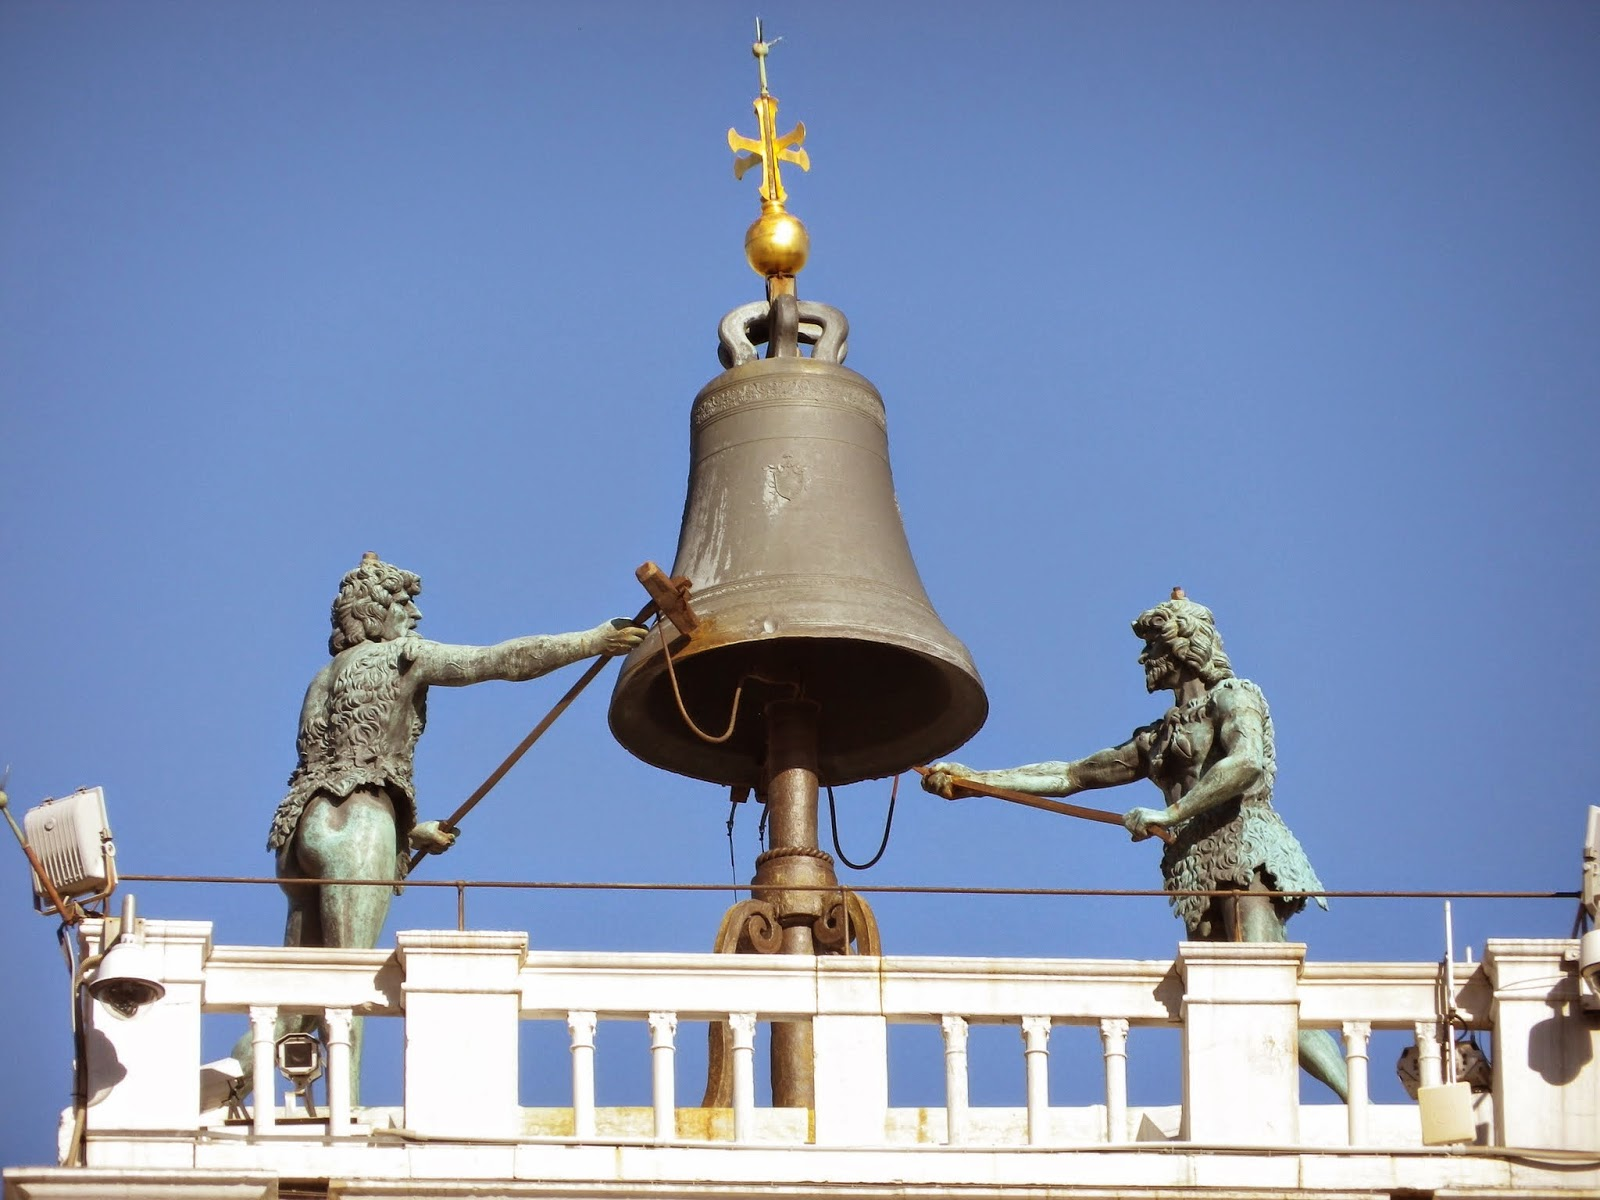 The two Moors, once known as li doi ziganti, Torre dell'Orologio, Piazza San Marco, Venice